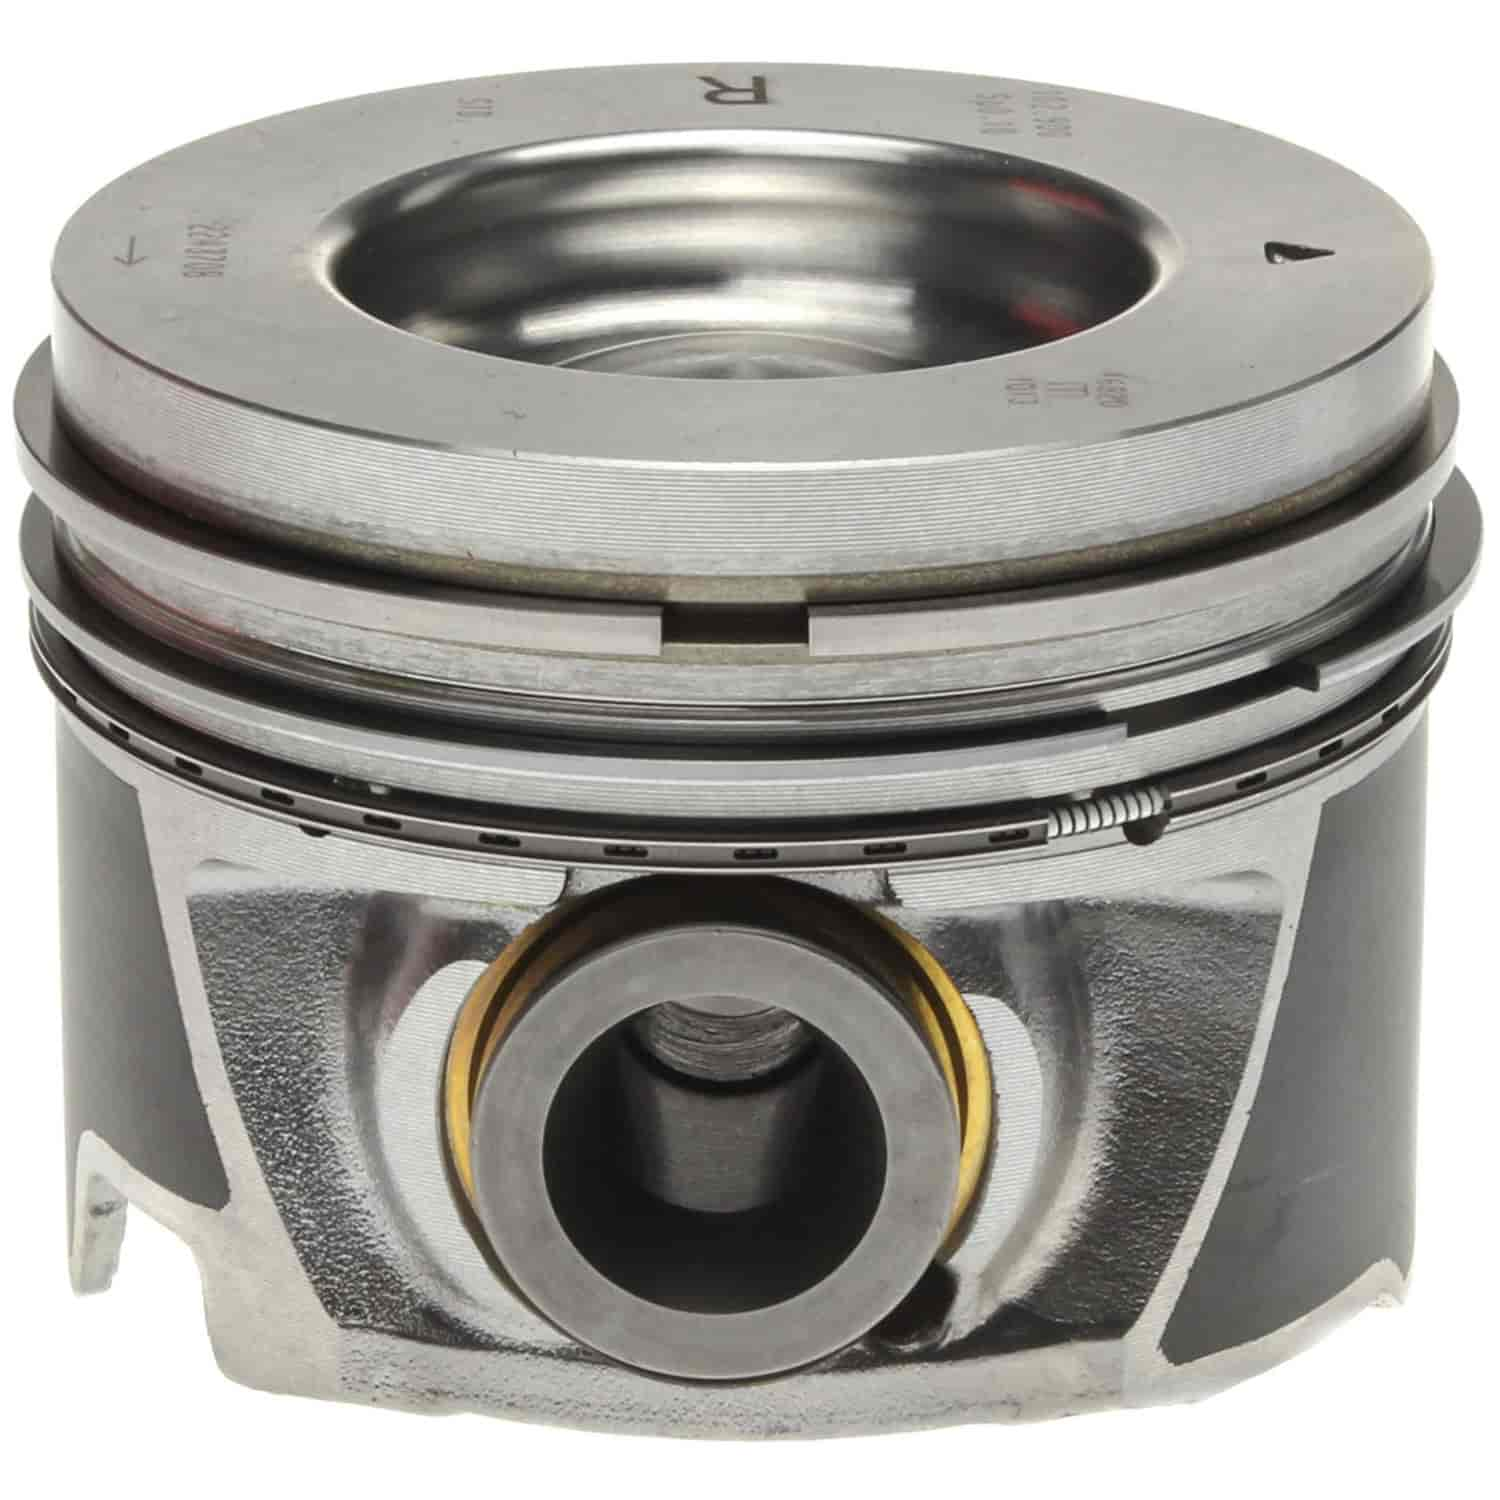 Clevite MAHLE 2243708WR040